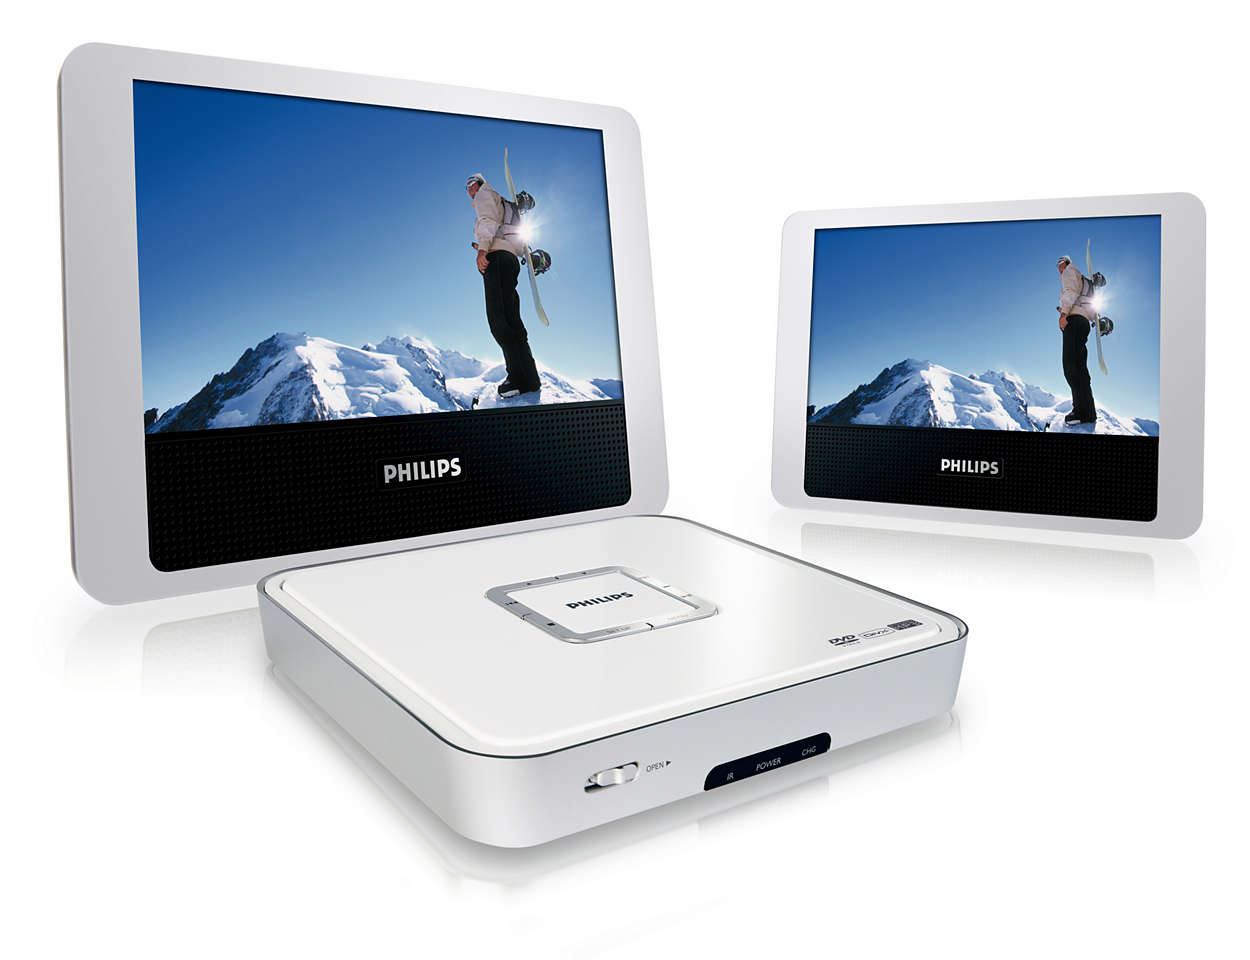 Doble DVD- og DivX®-filmopplevelsen